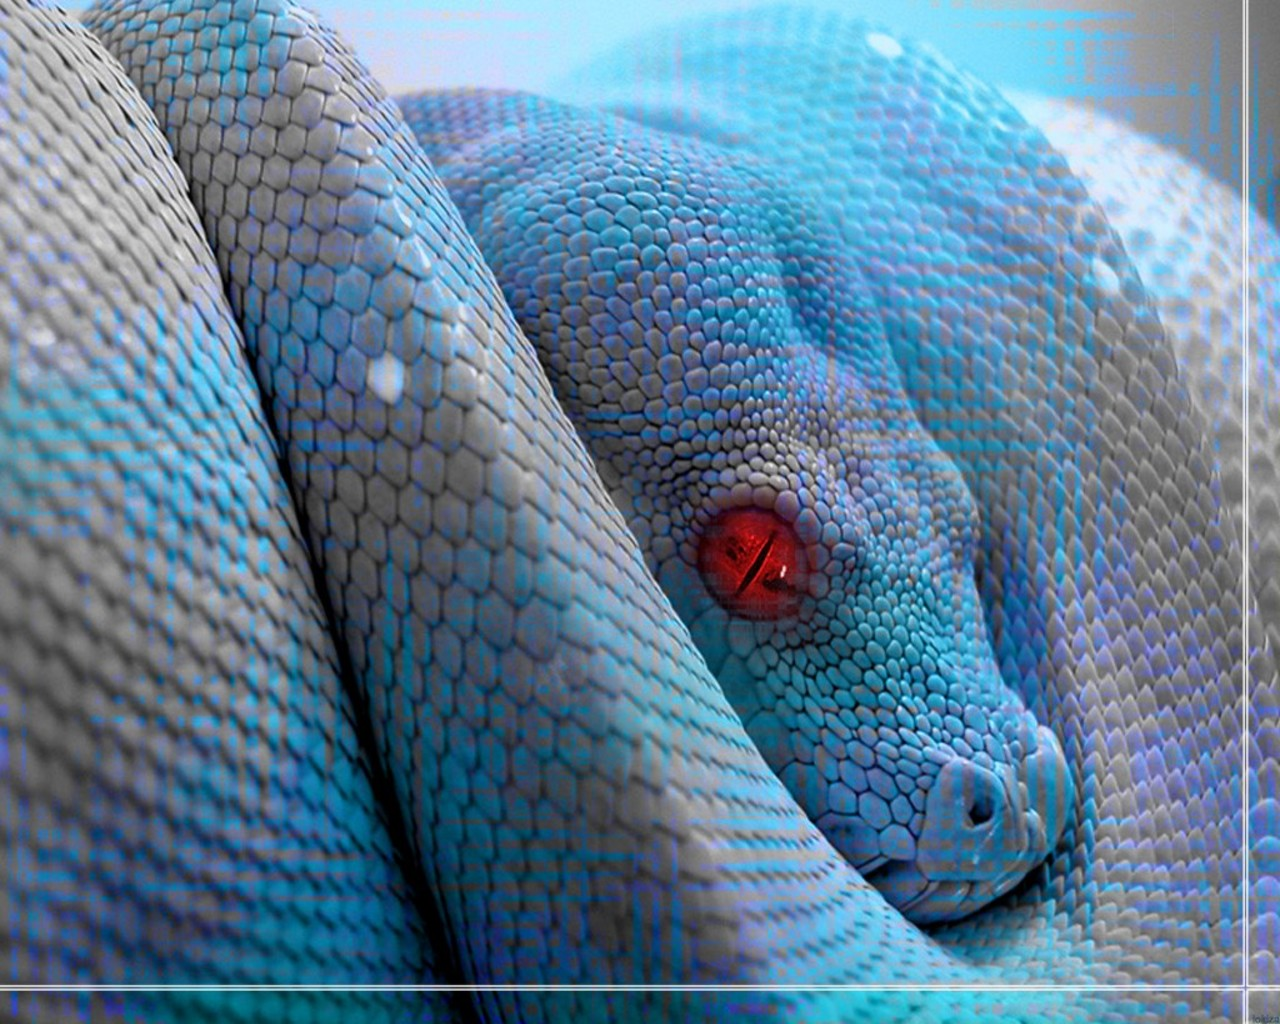 HD Animal Wallpapers: HD Reptile Wallpapers - photo#32